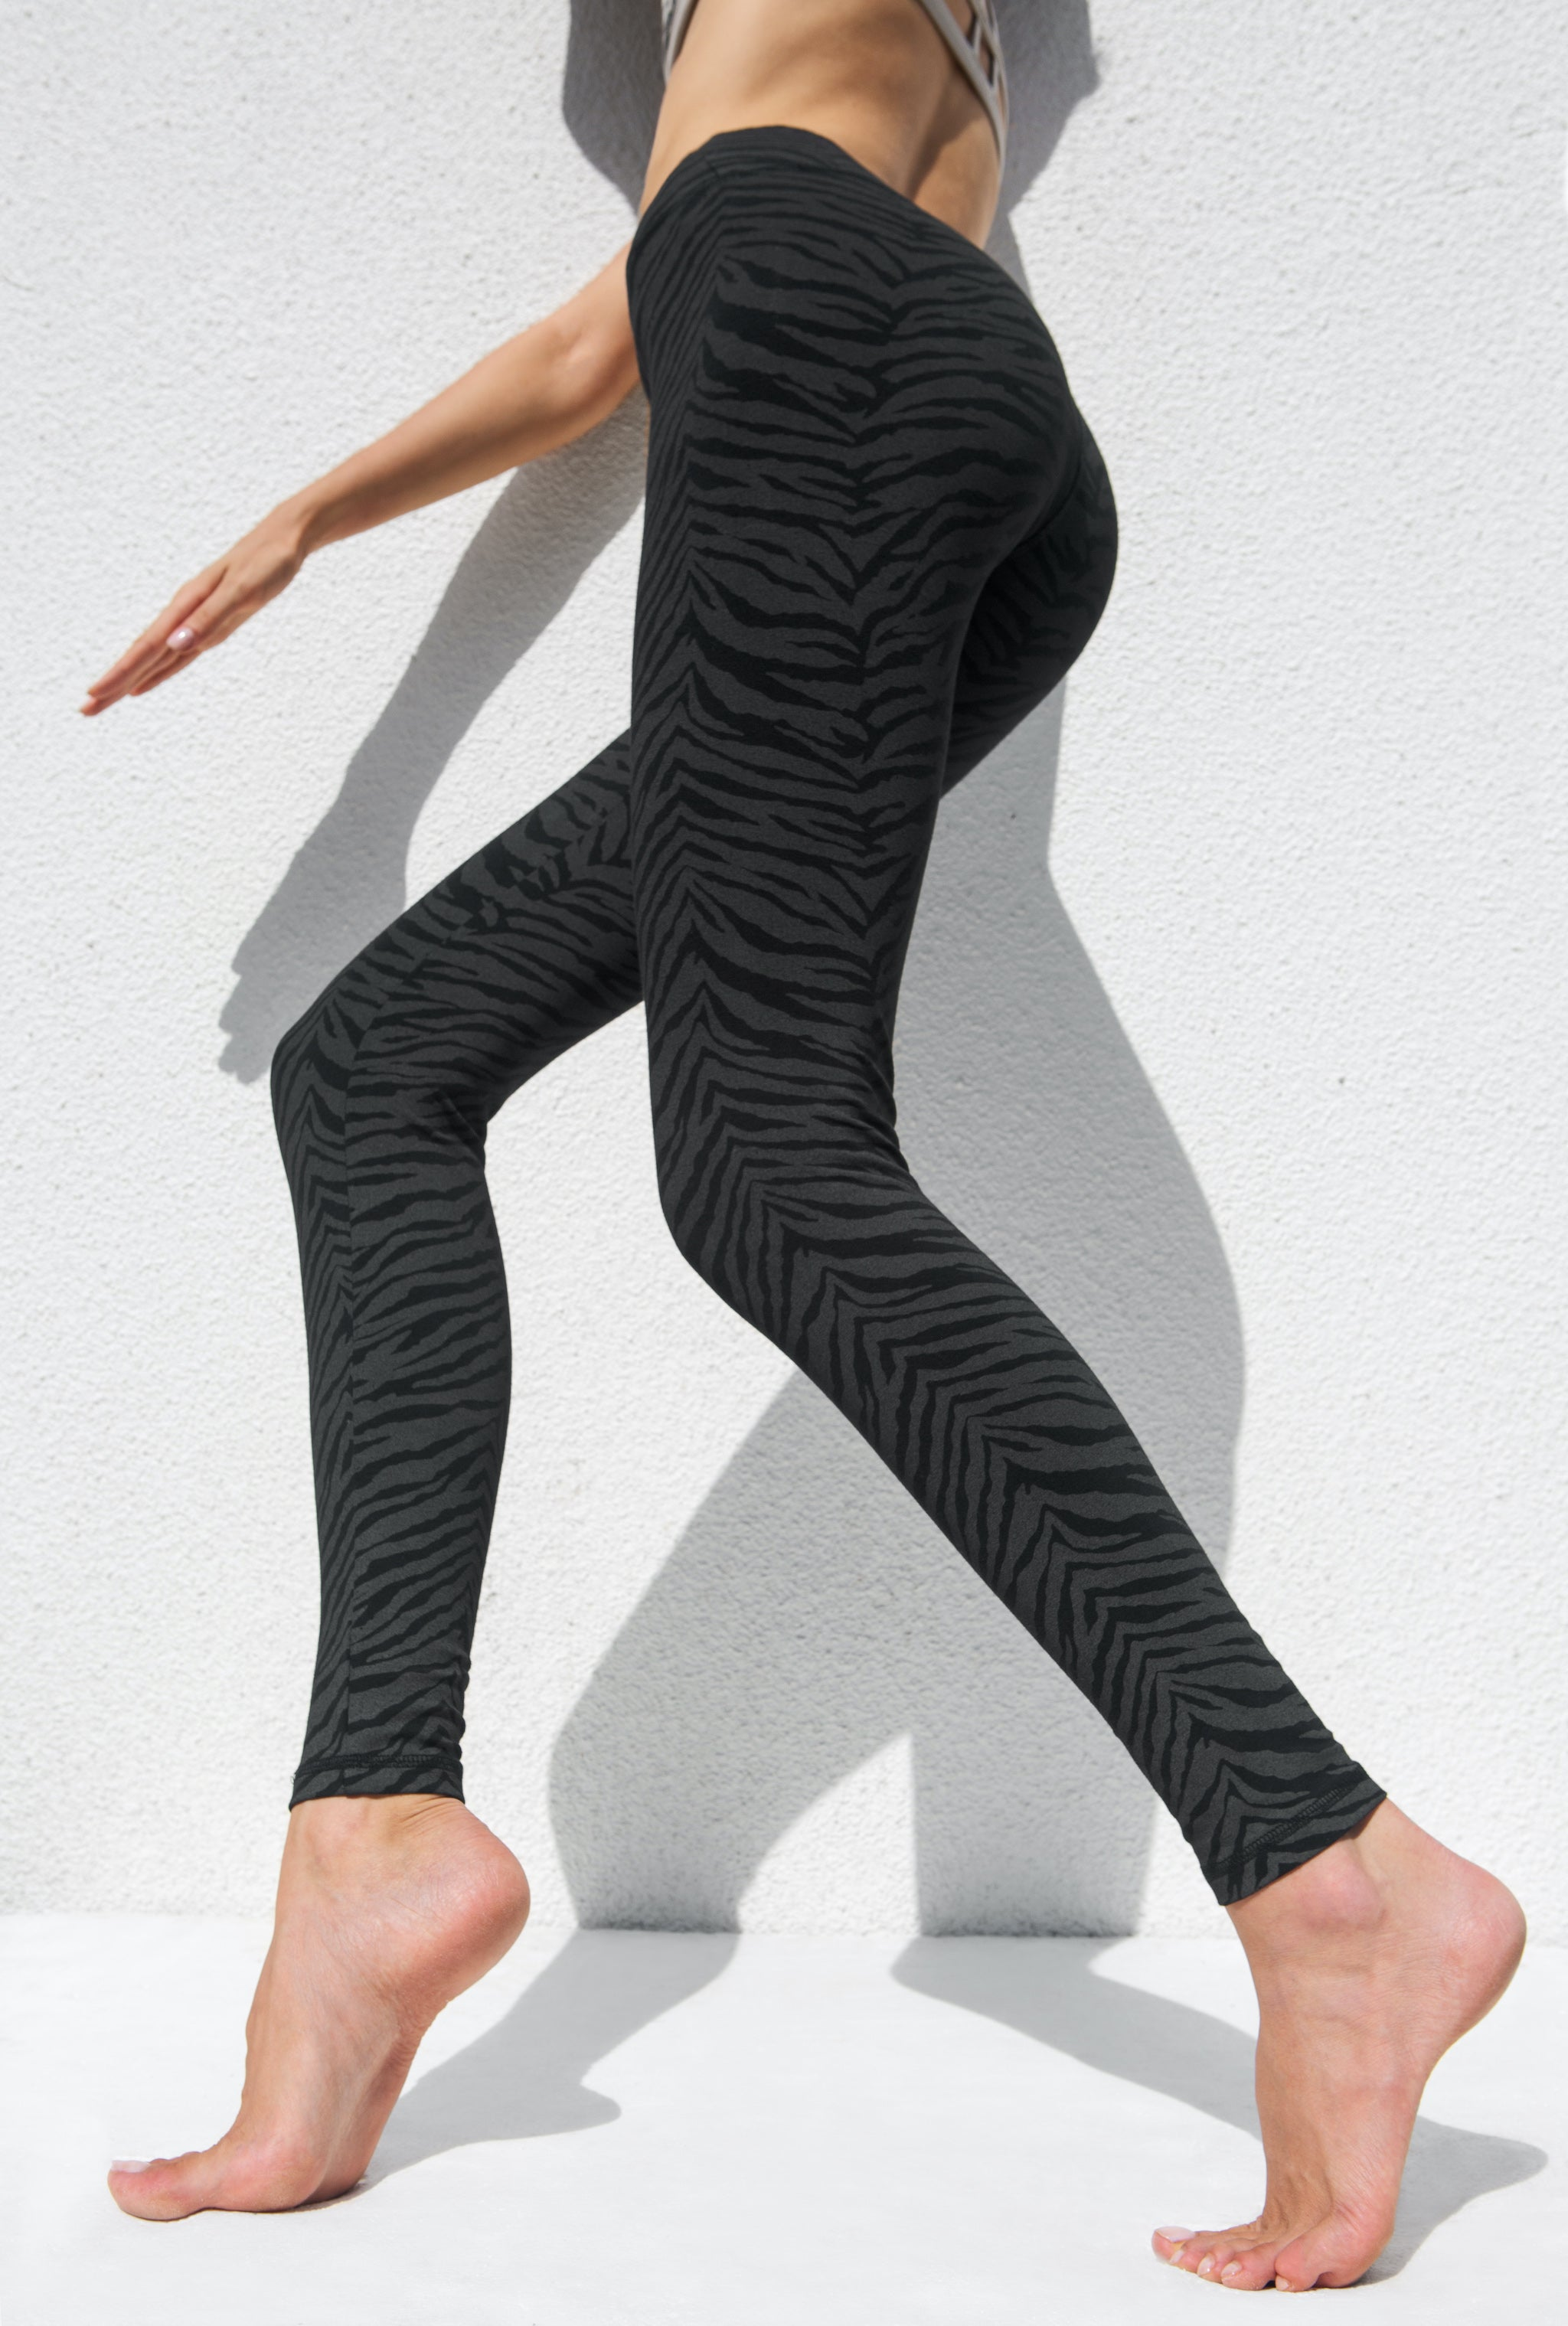 Super High Waist Leggings Tights - Black Zebra